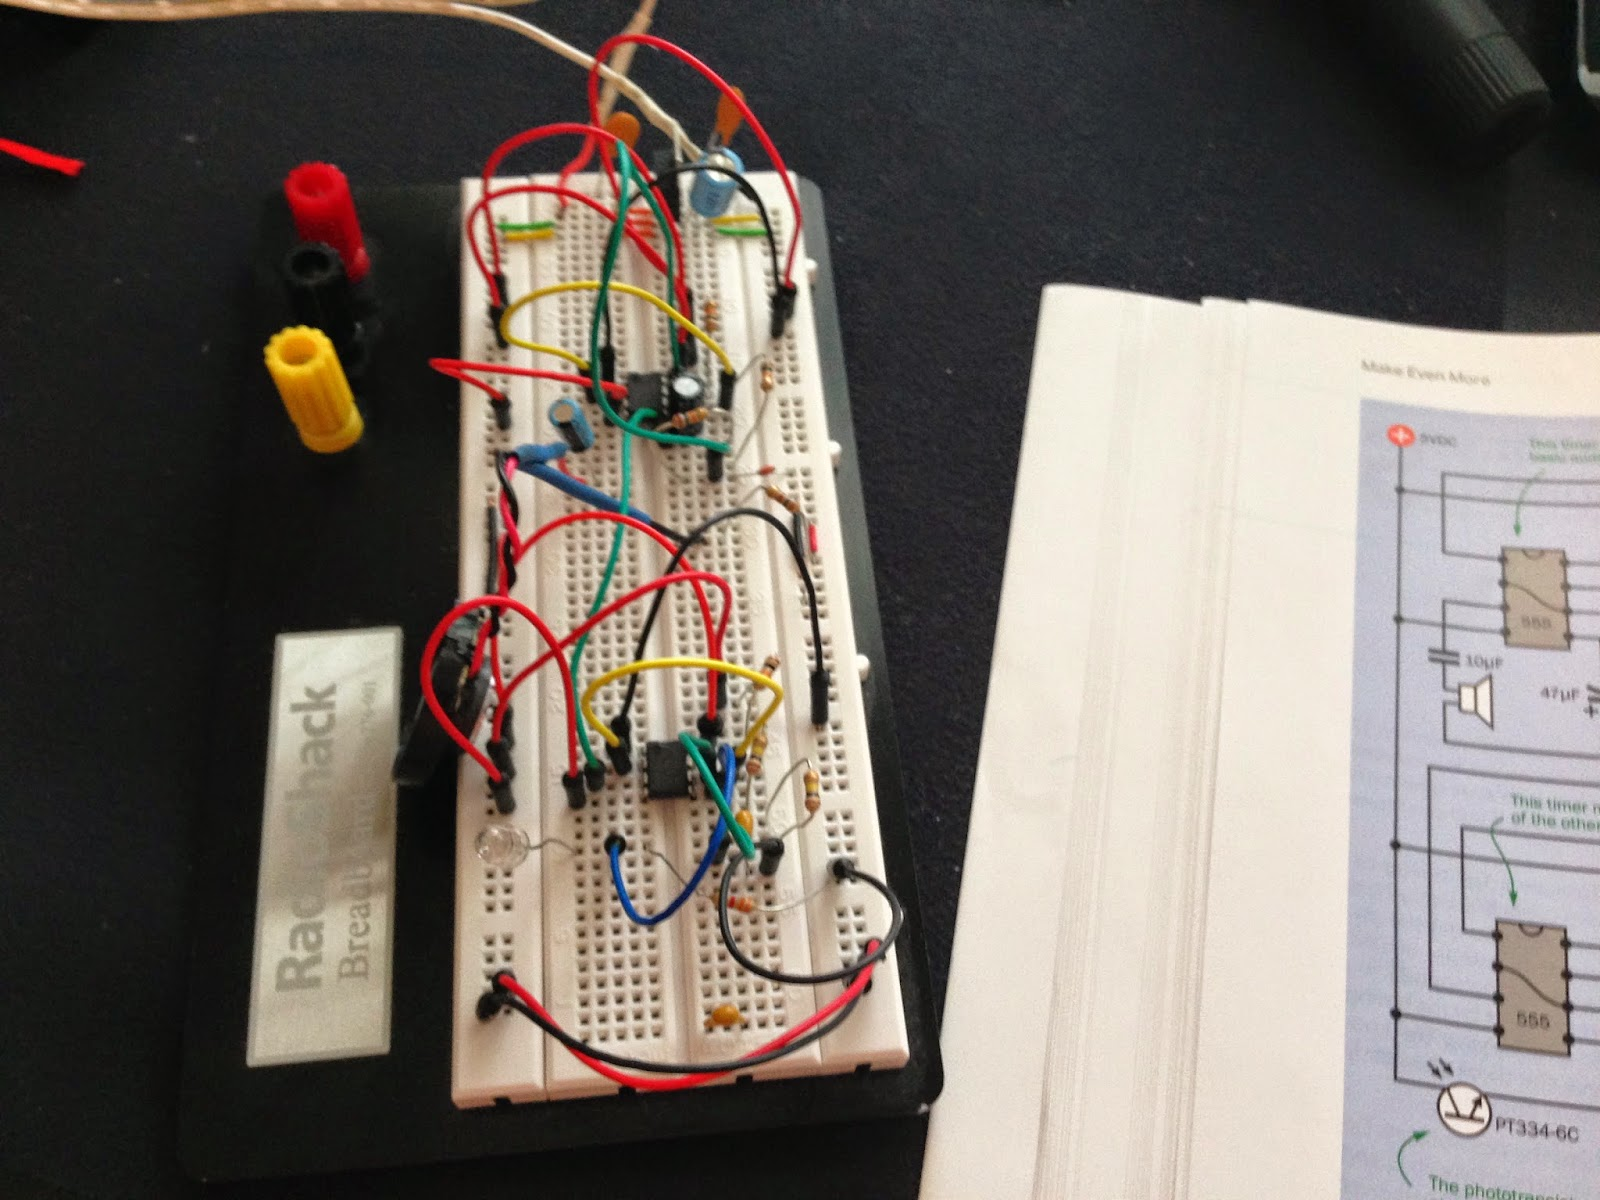 555 556 Computers Electronics Search Engine About How To Build Relay Toggle Circuit Using A Timer I Highly Recommend That As You Wire Up Each Chip Examine Carefully The Wires Connect Pin And Try Understand Exactly What Is